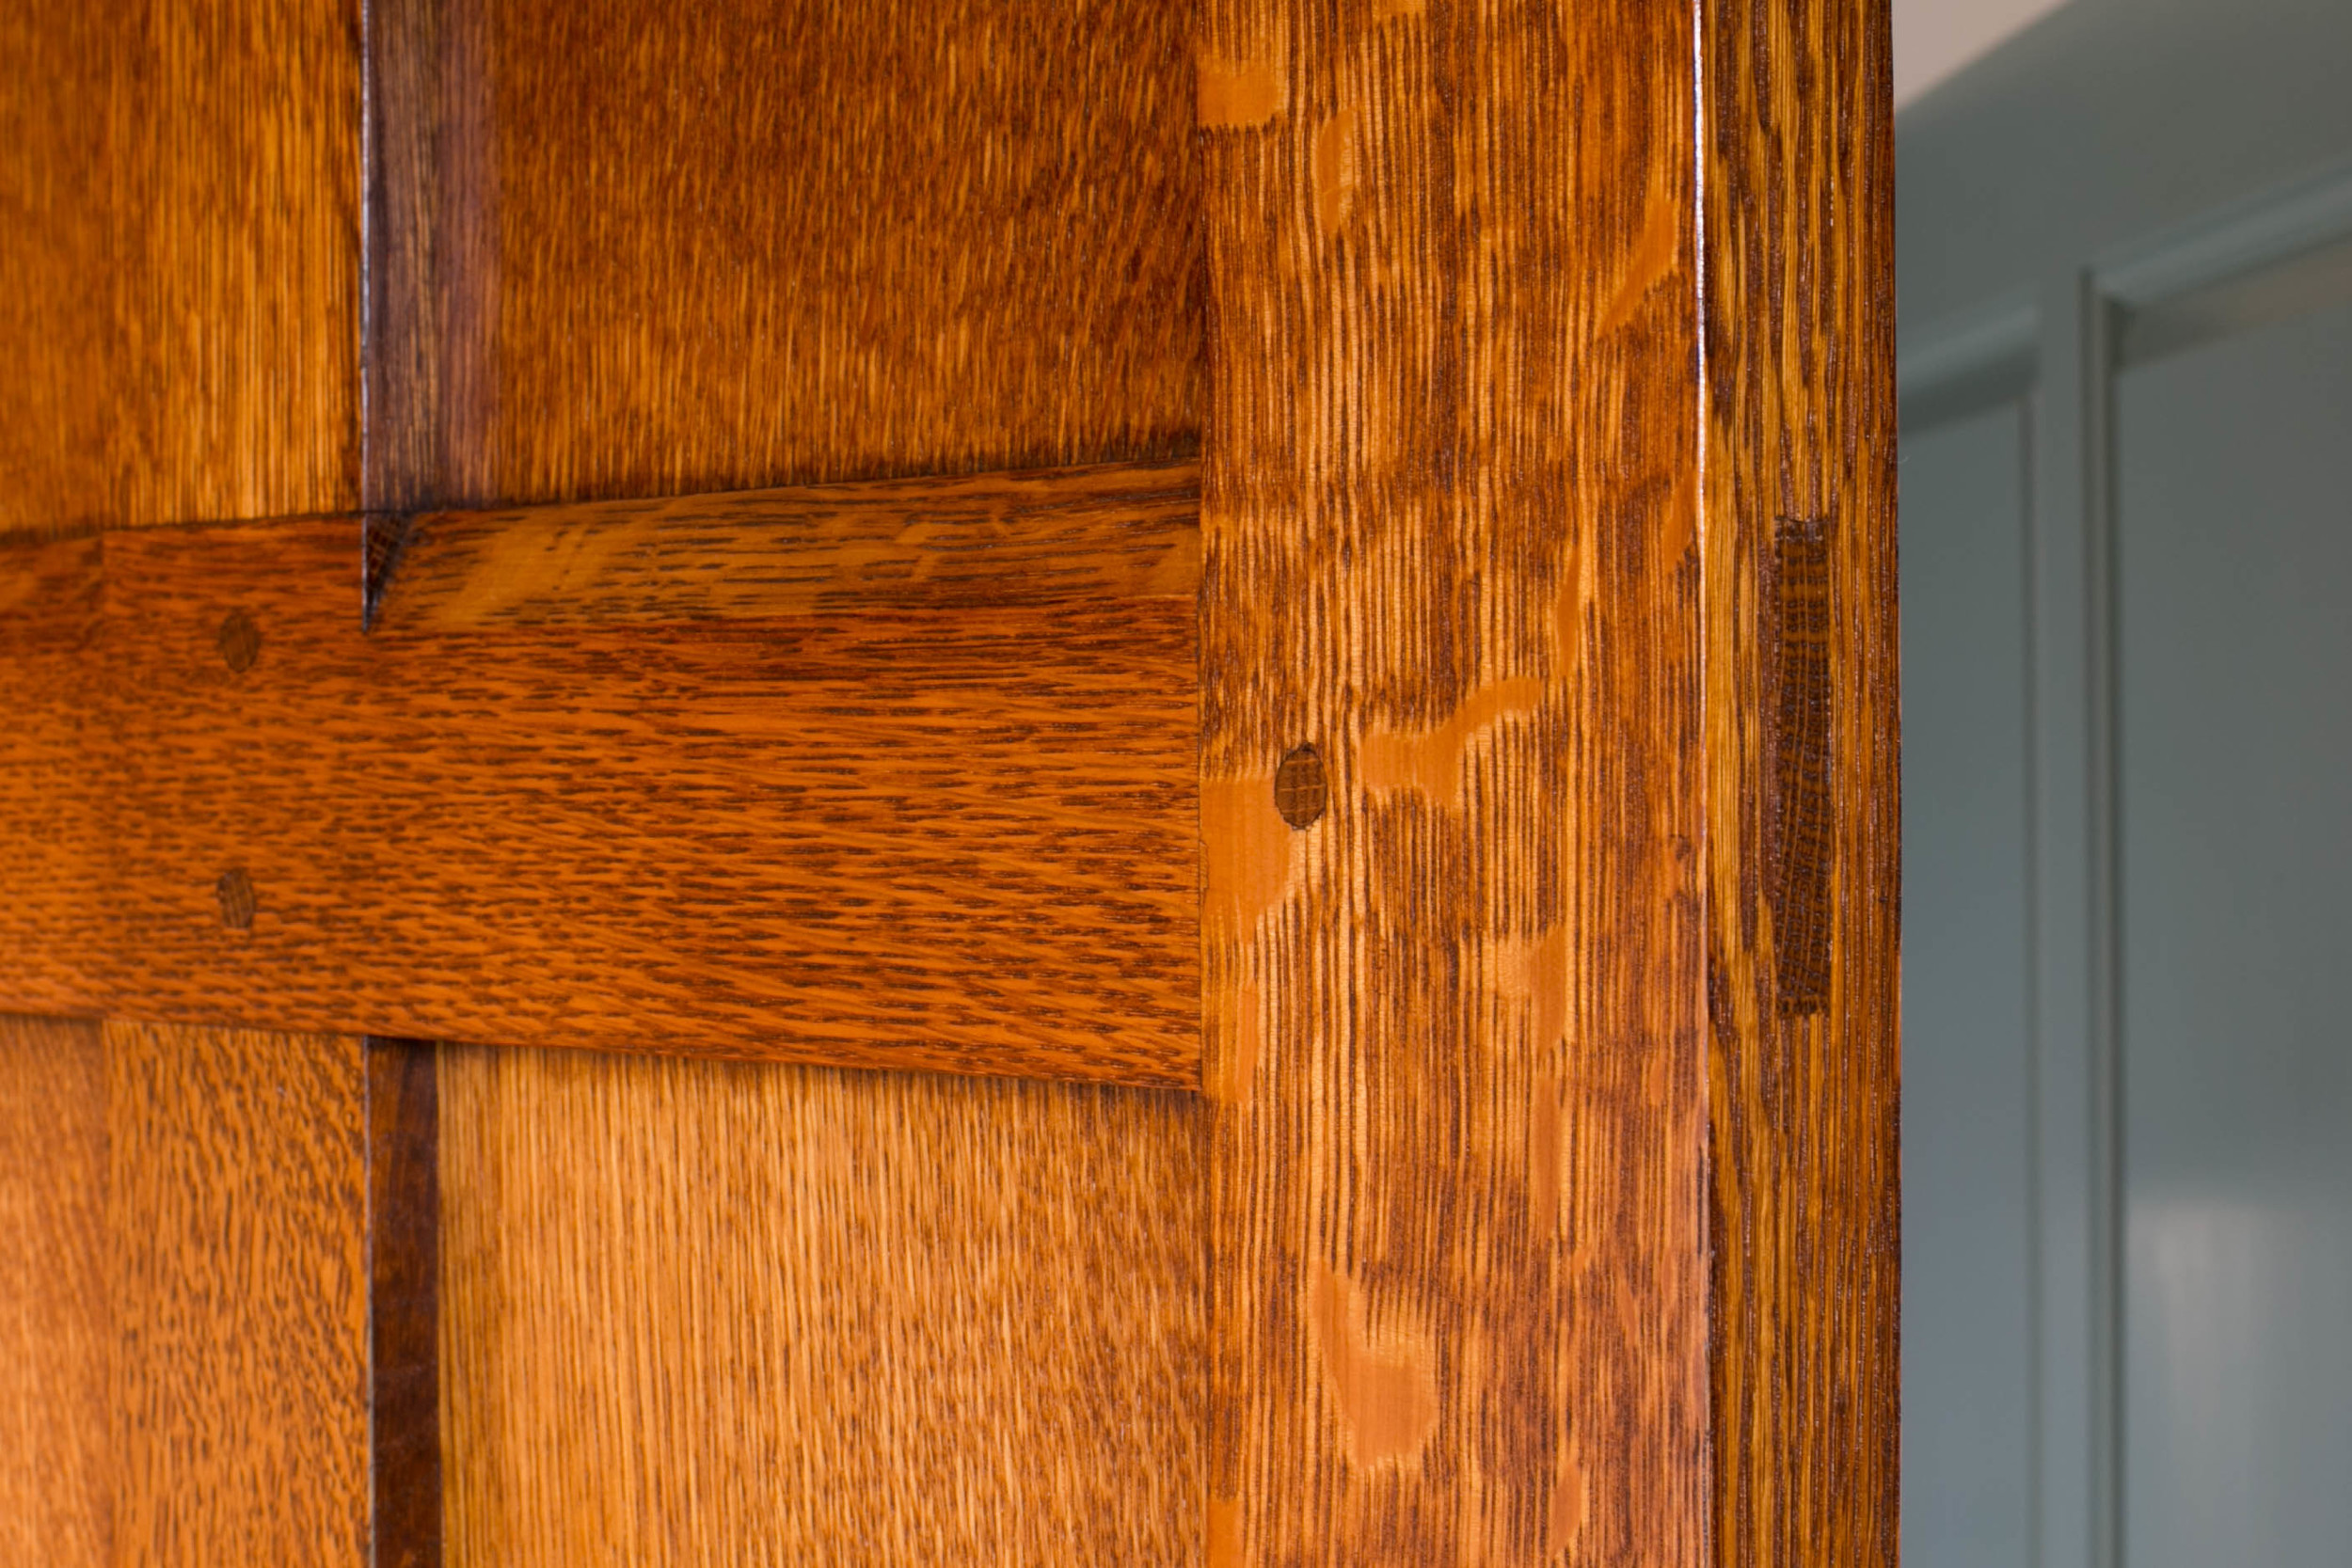 Traditionally constructed solid quarter-sawn oak door.Pegged mortise & tenon joinery is considered to be the finest and longest lasting door design available